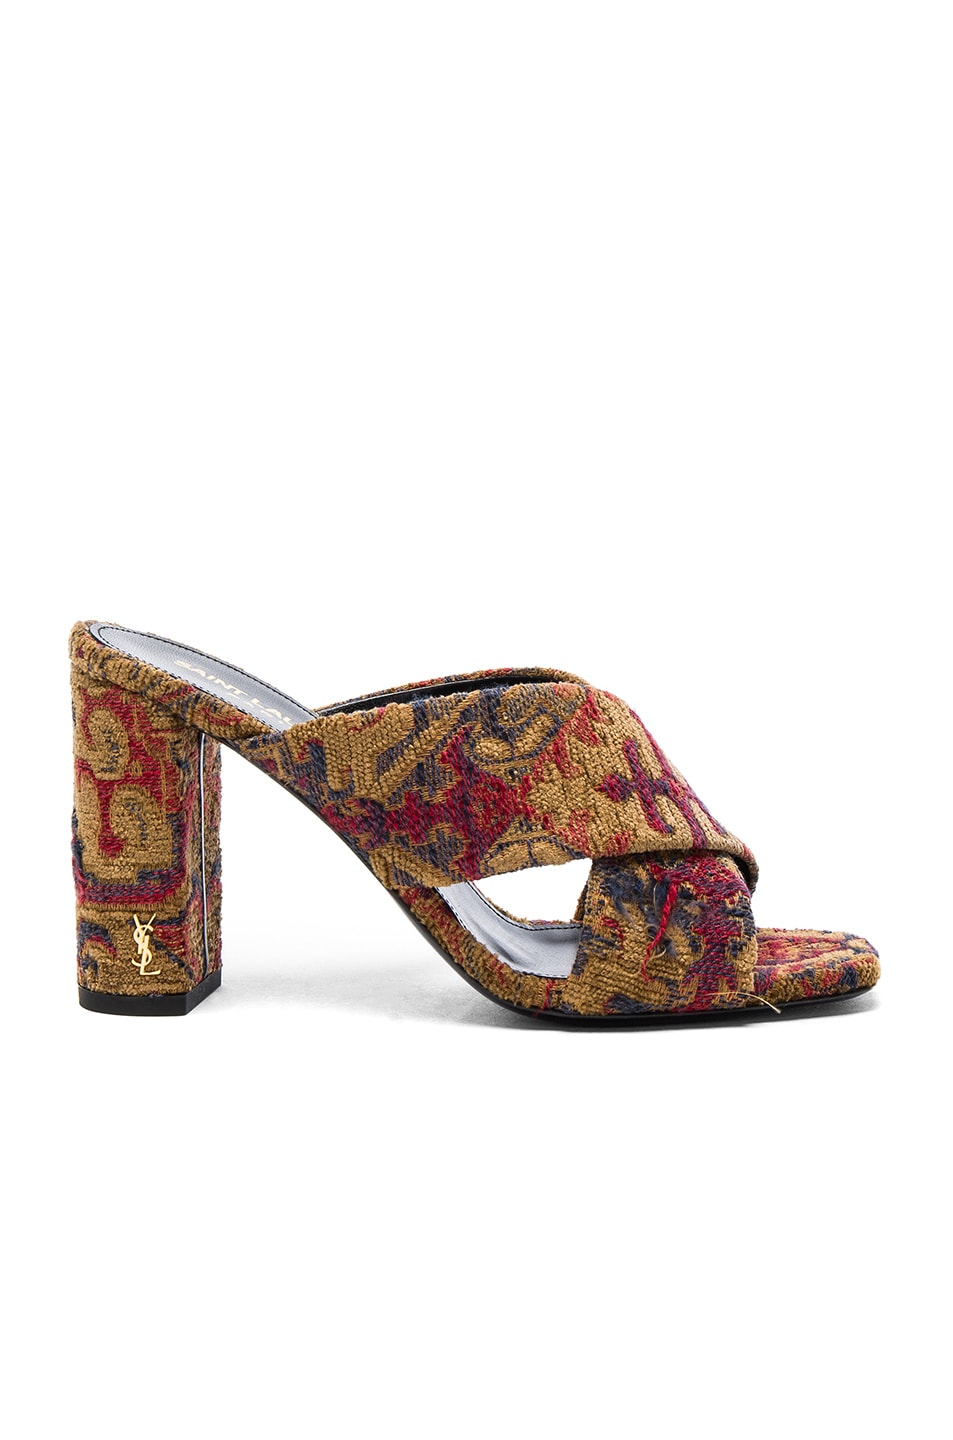 Image 1 of Saint Laurent Loulou Tapestry Mules in Saffron Red